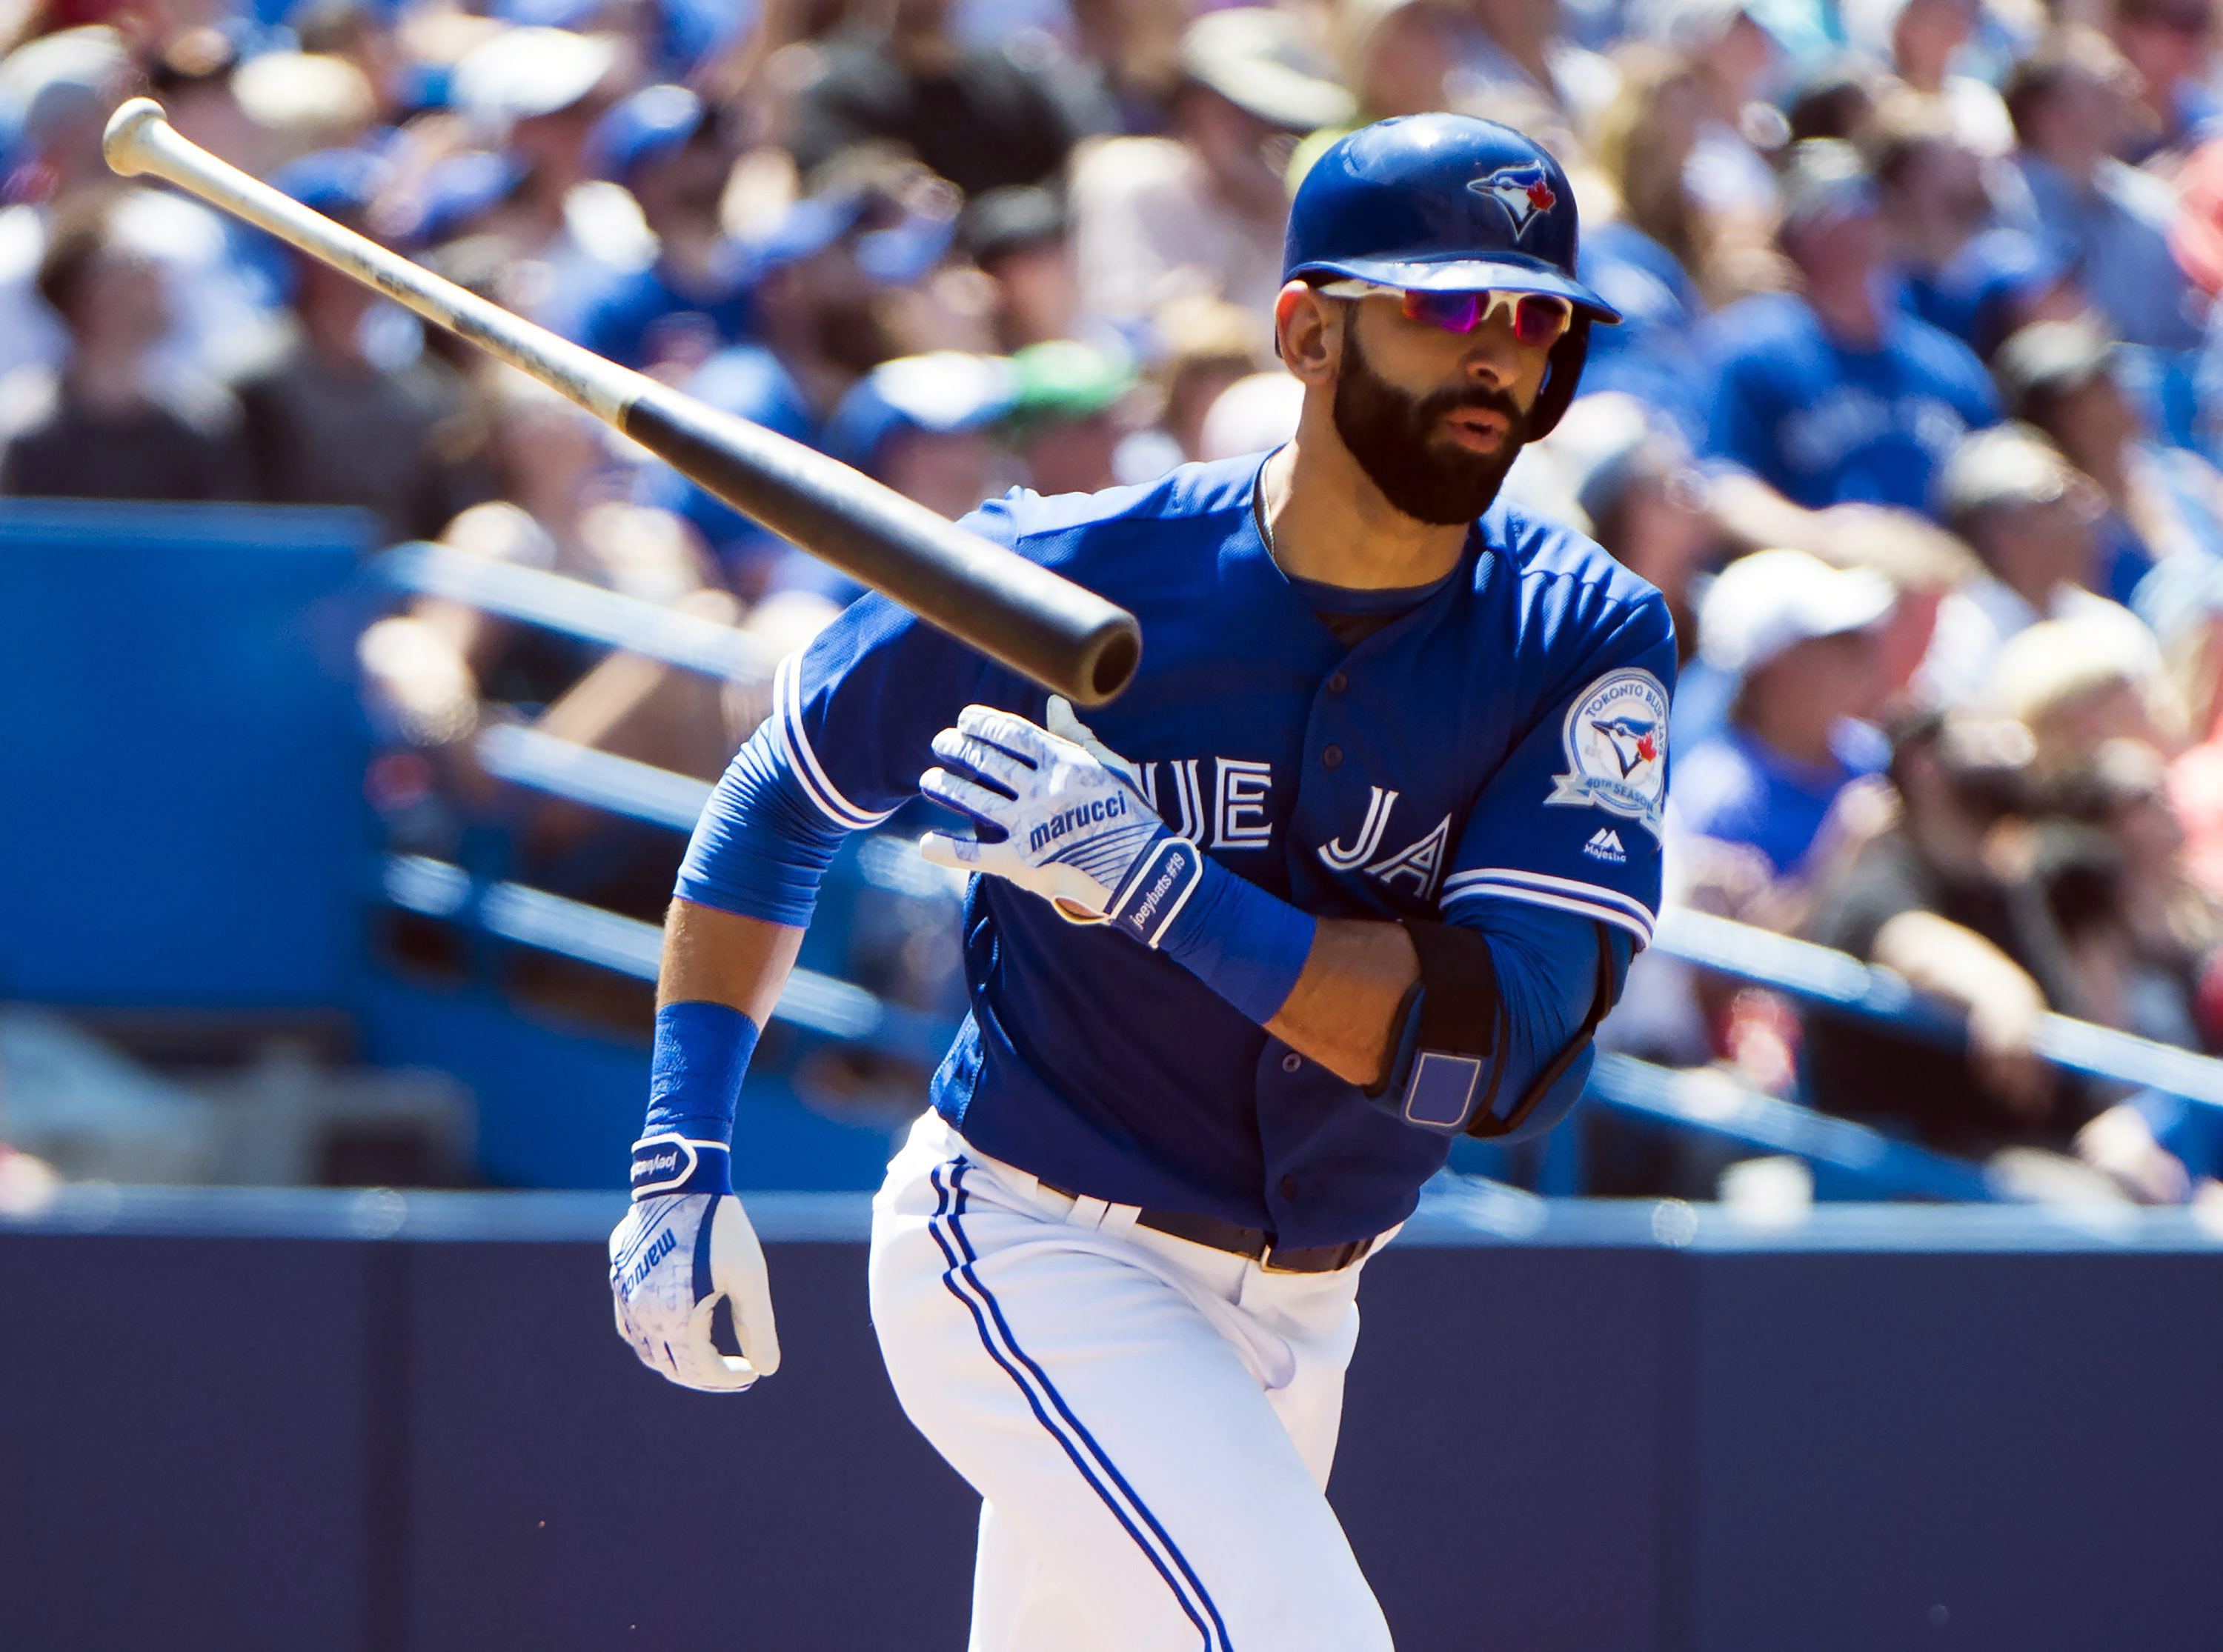 Toronto Blue Jays Bautista tosses his bat aside as he grounds out against the Boston Red Sox during the fifth inning of baseball game in Toronto, Saturday, May 28, 2016. (Nathan Denette/The Canadian Press via AP) MANDATORY CREDIT